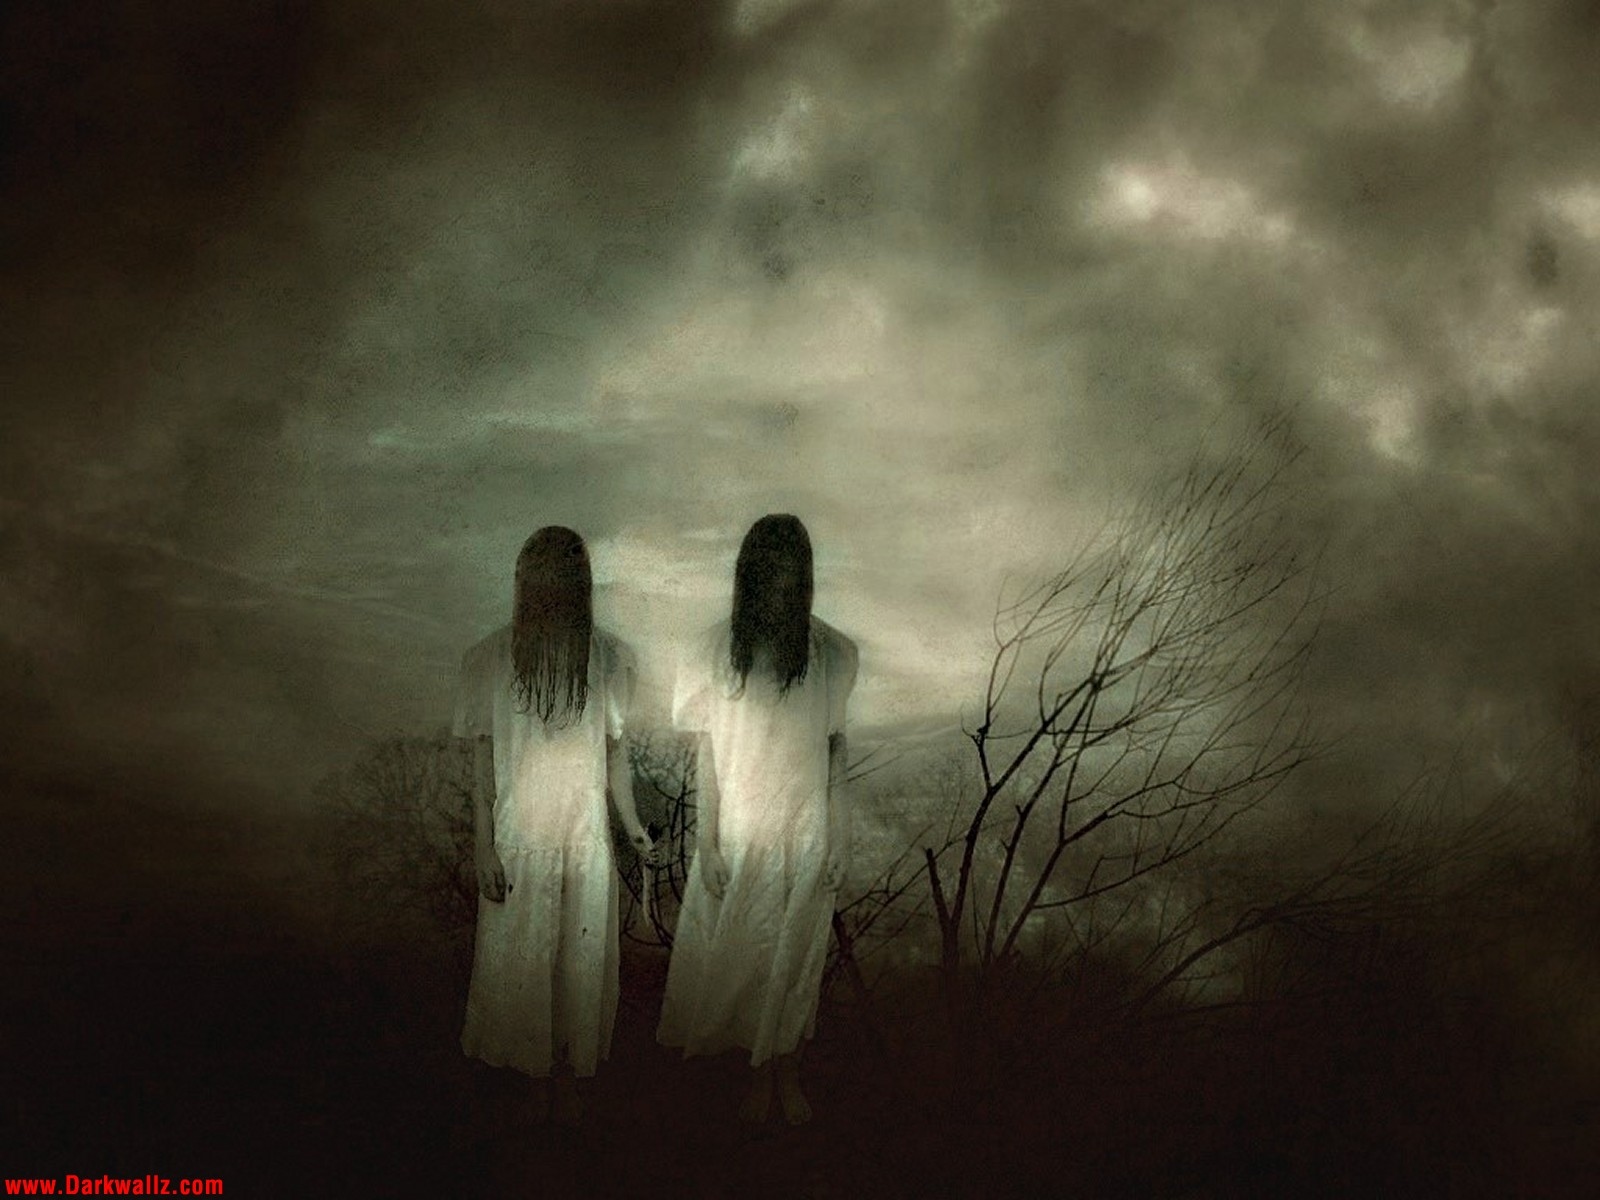 Scary black themed horror wallpapers 1 Design Utopia Trend 1600x1200